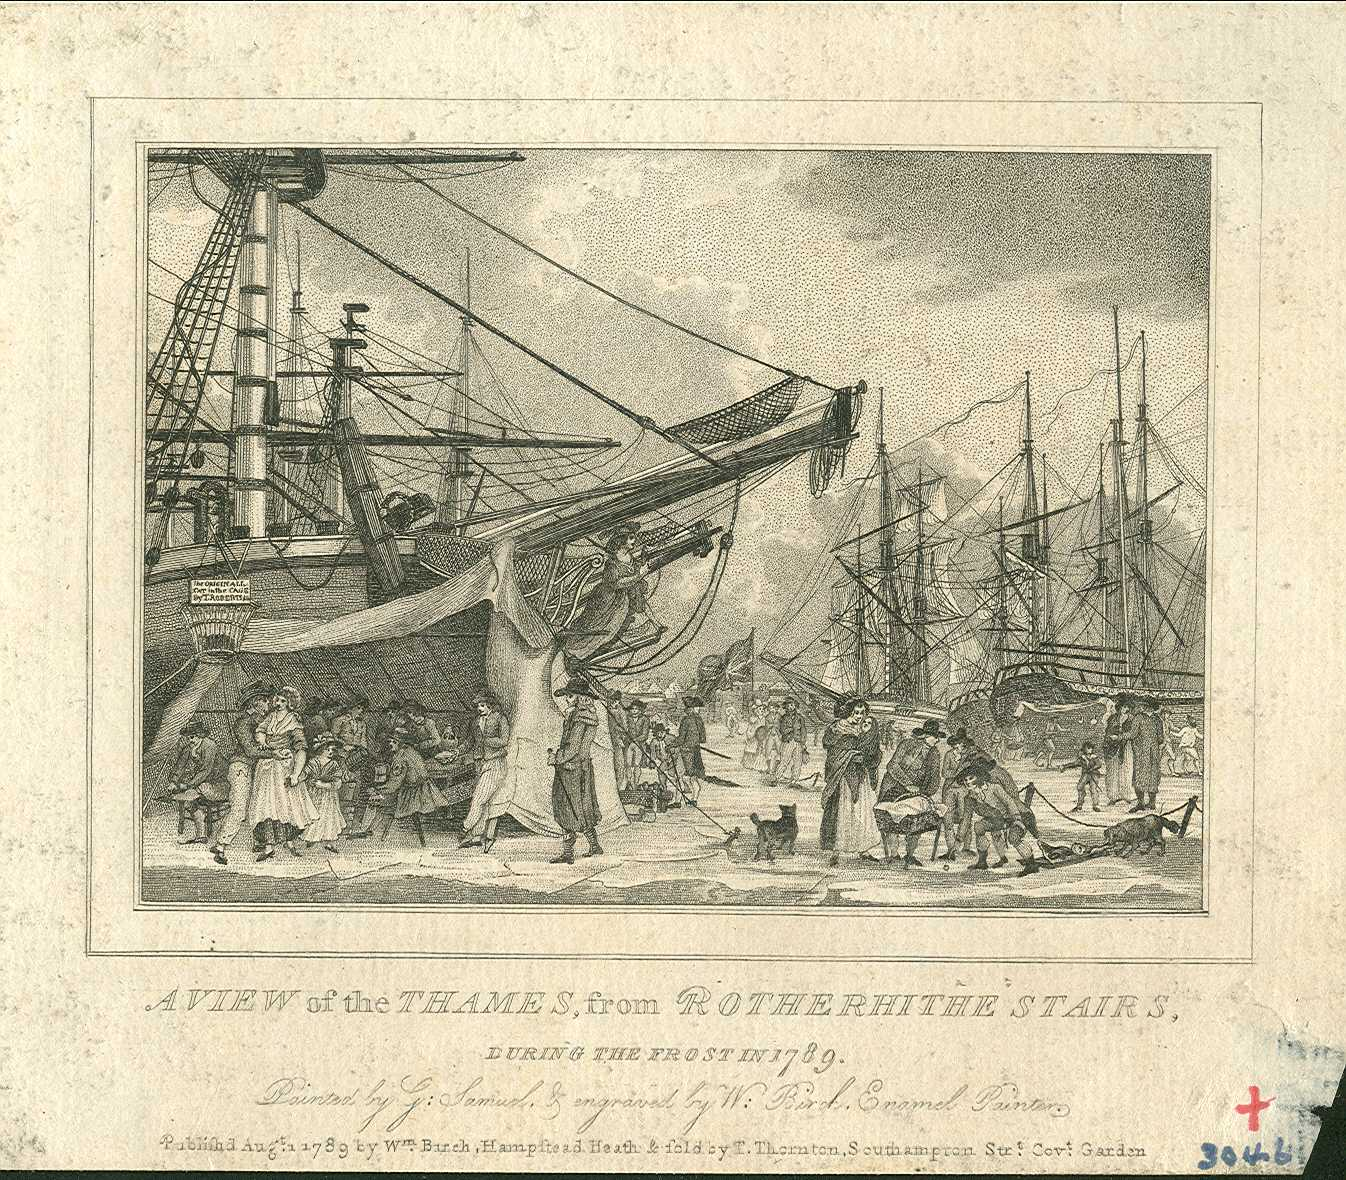 A view of the Thames from Rotherhithe Stairs January 1789 by G. Samuel